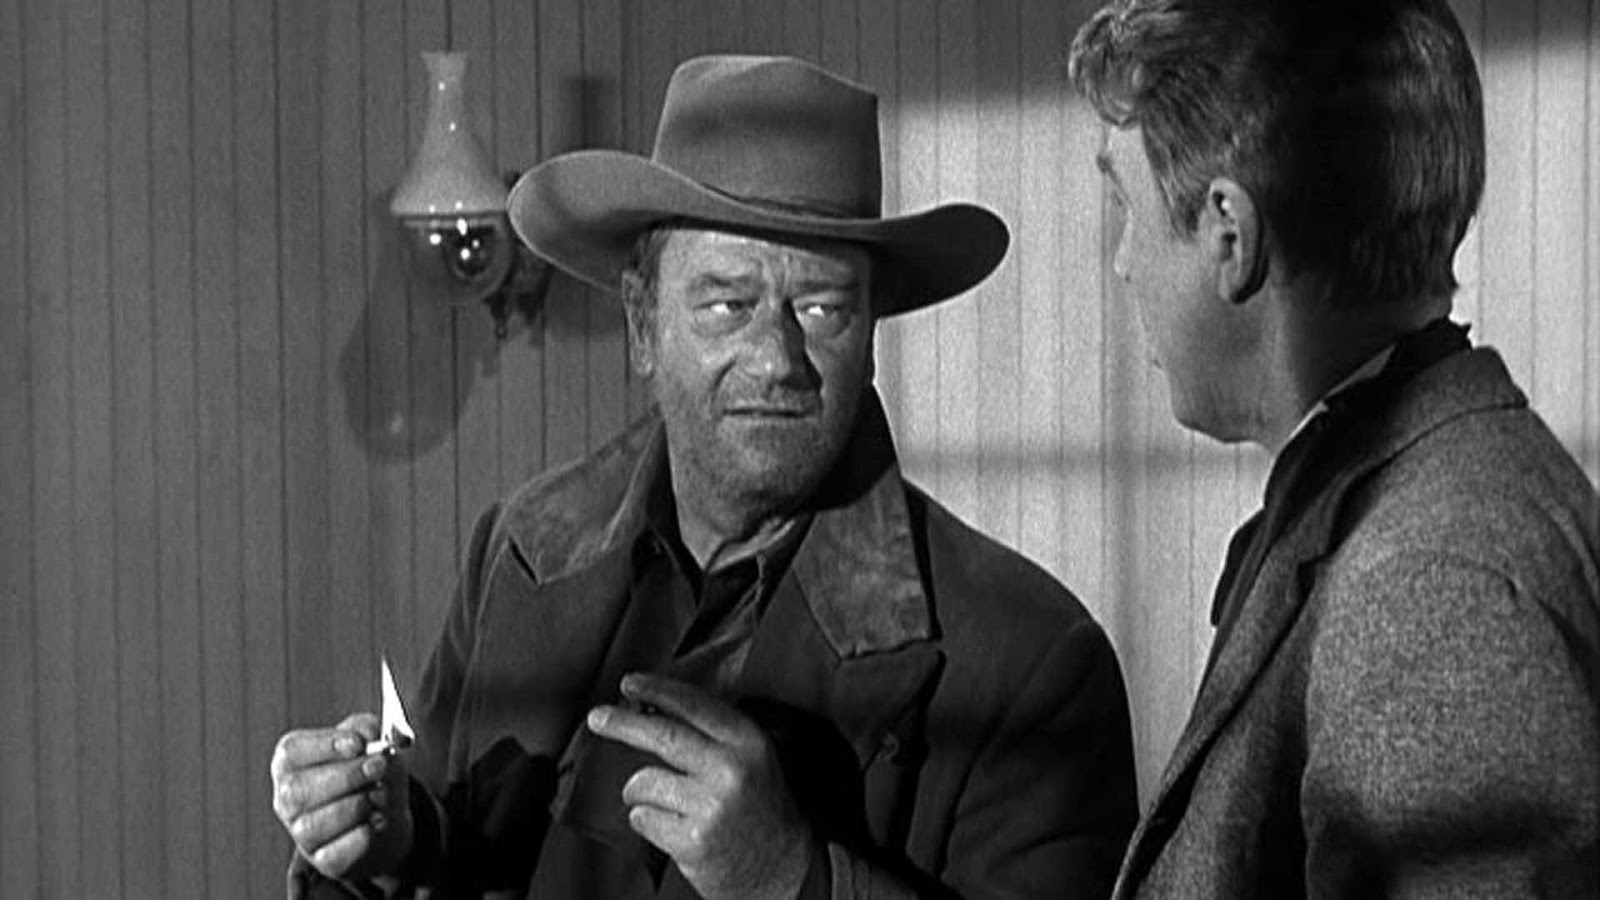 Tom Doniphon John Wayne James Stewart John Ford Man Who Shot Liberty Valance